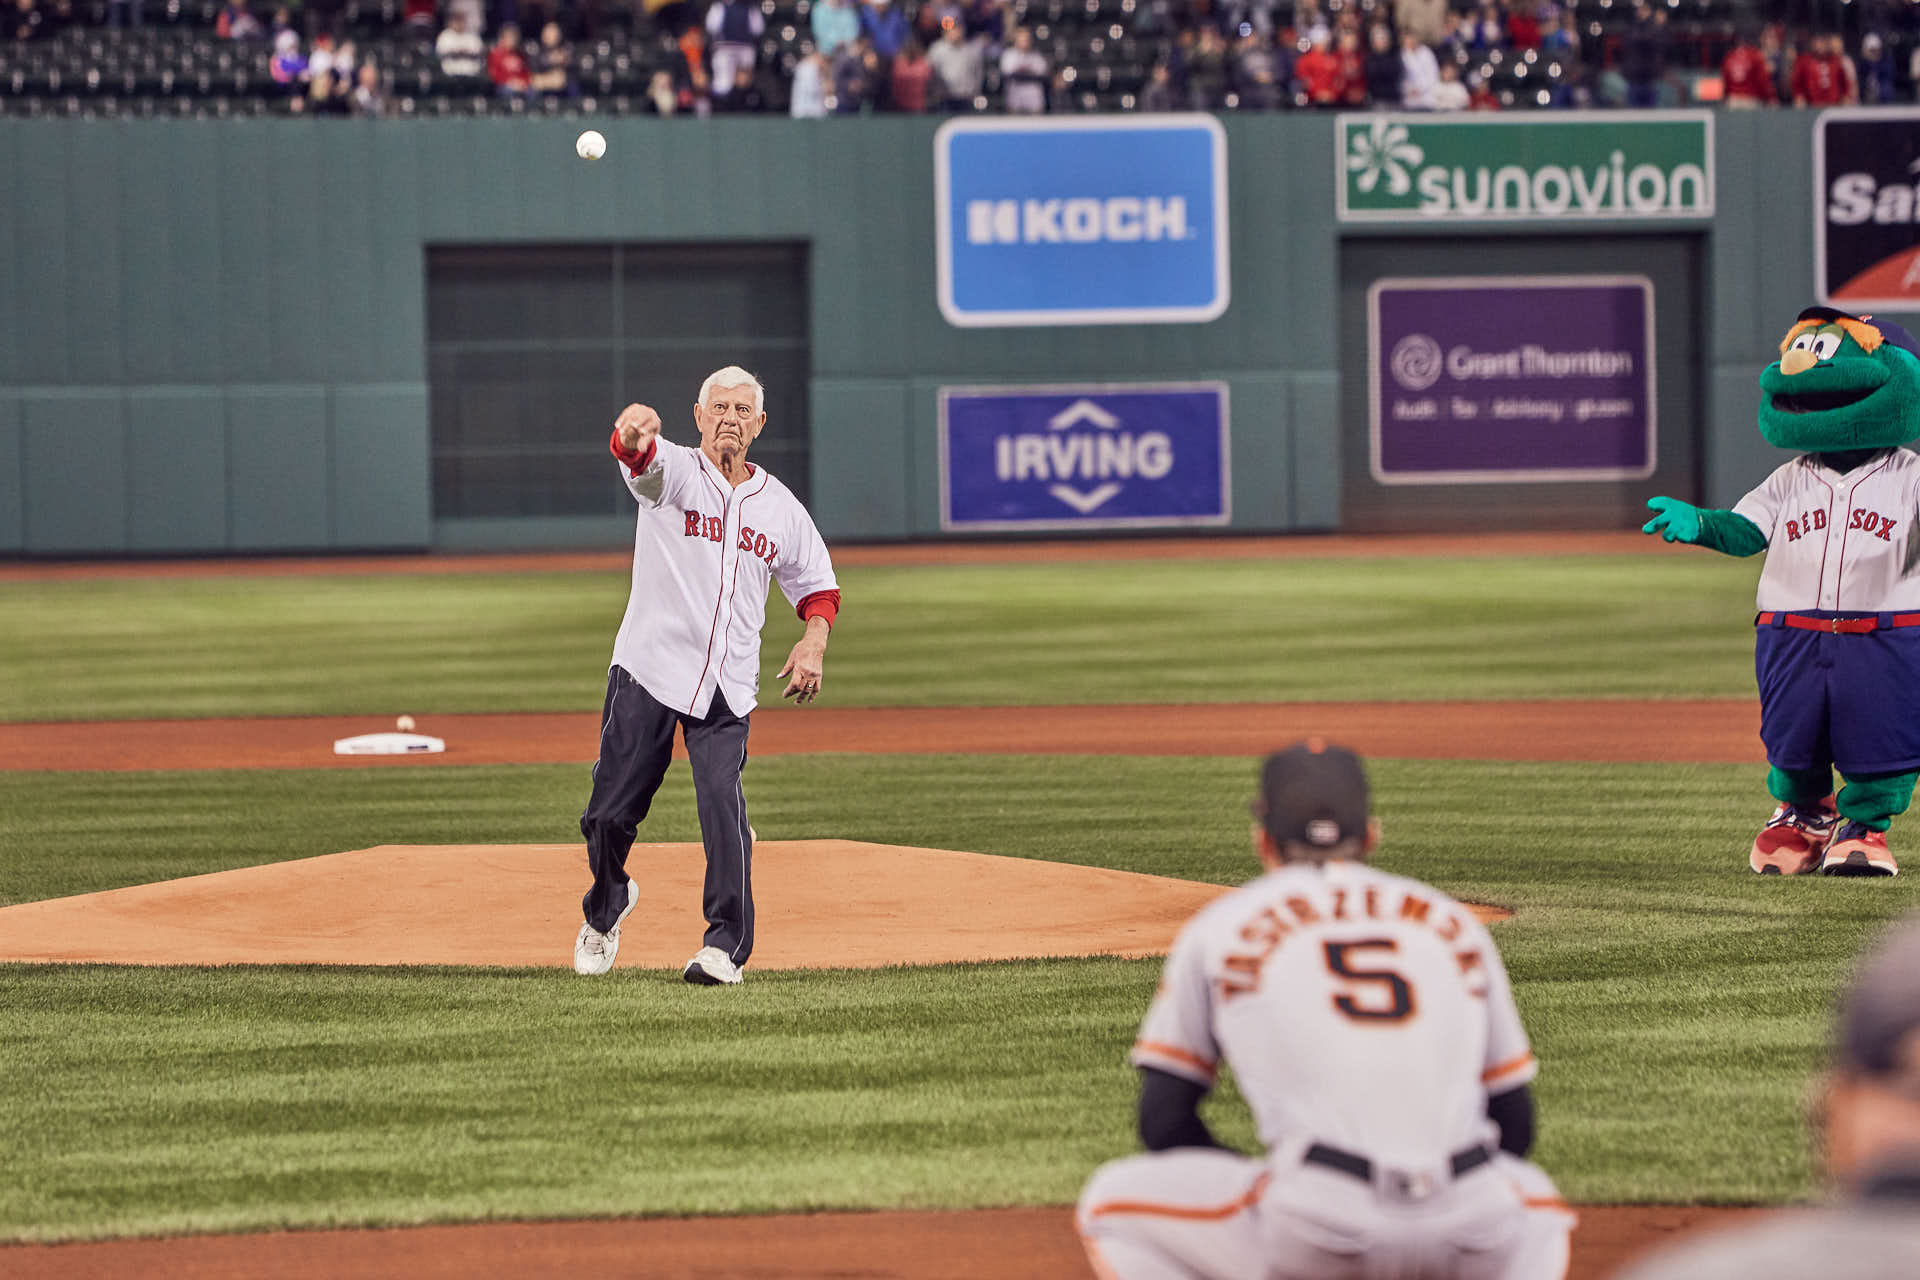 Editorial Yastrzemski to Yastrzemski first pitch at Fenway Park by Boston based photographer Greg Caparell